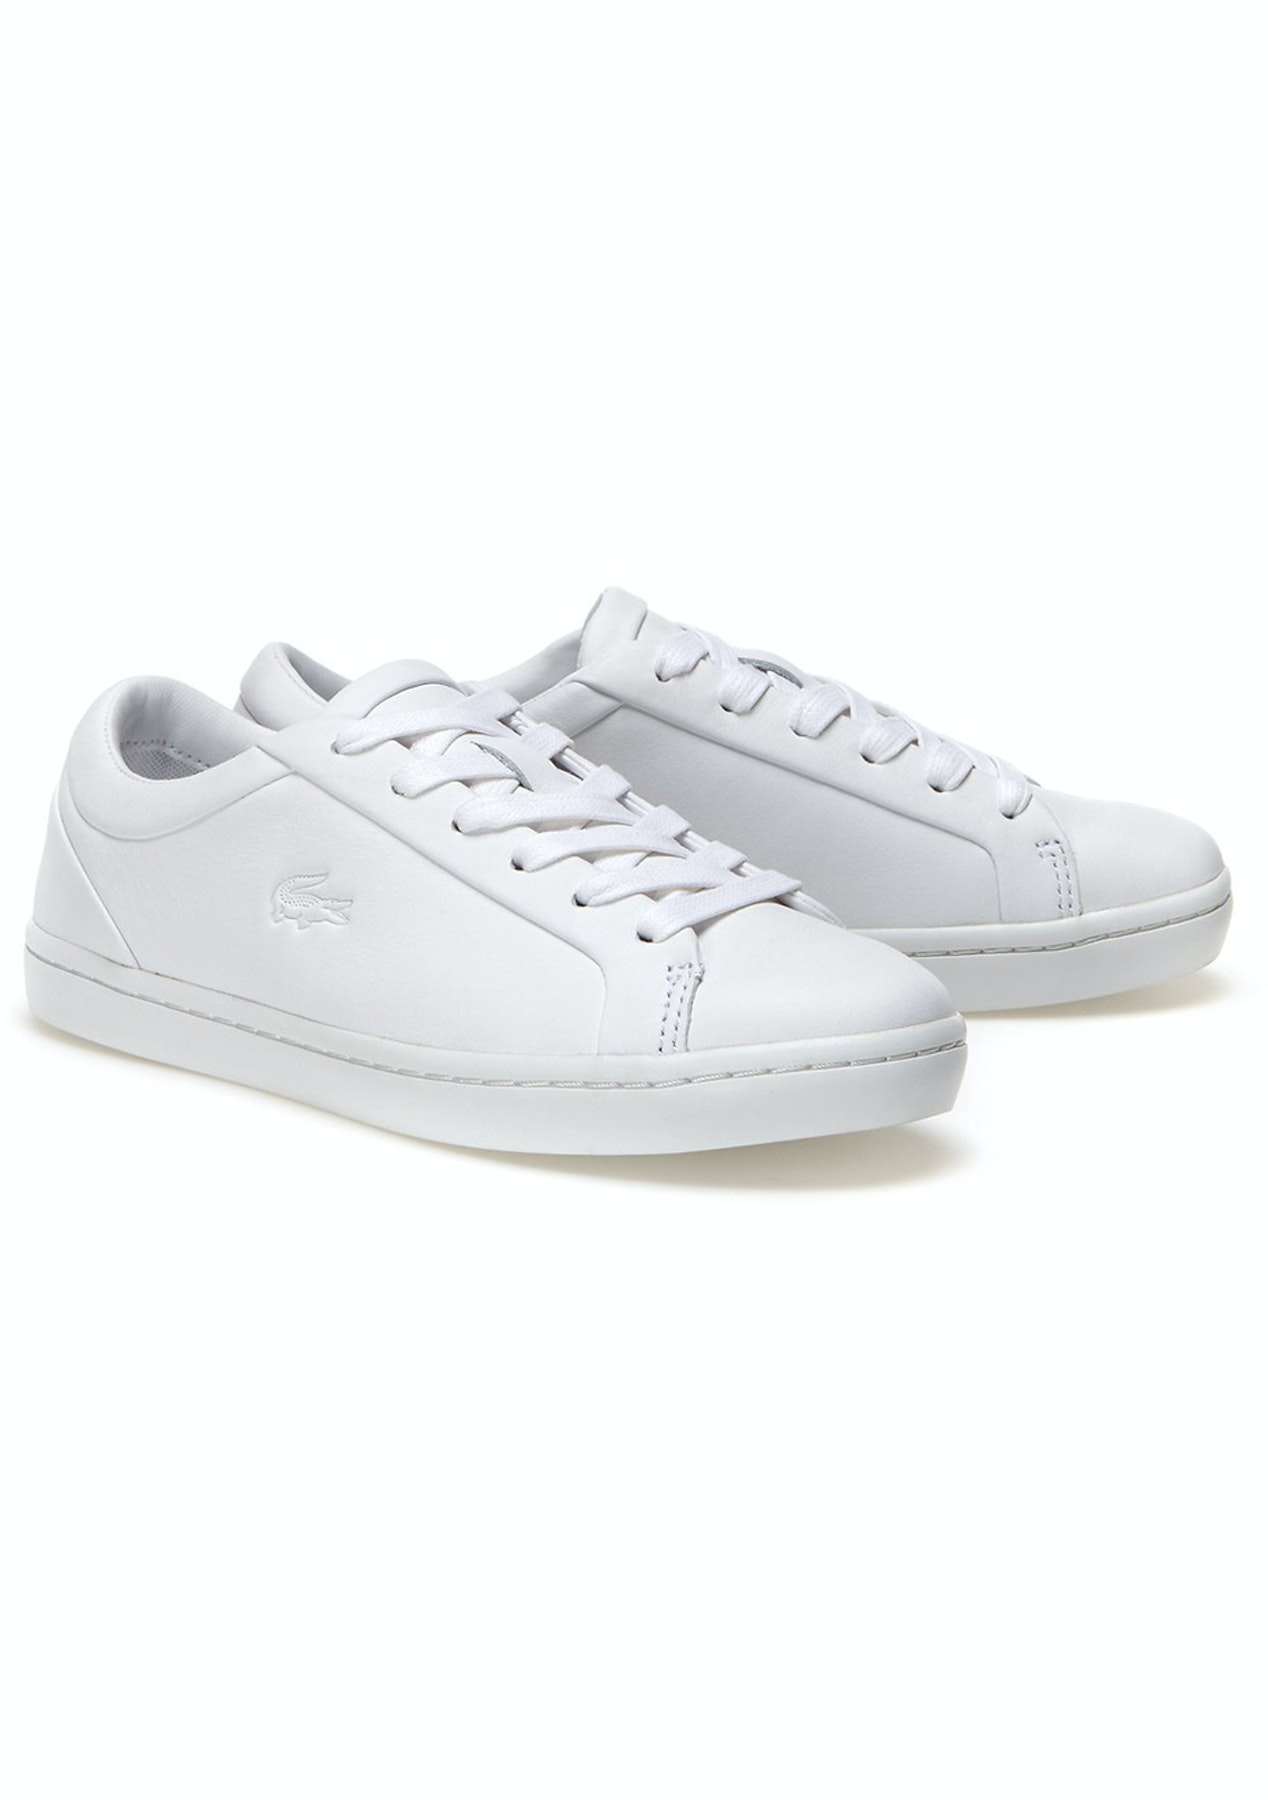 fe3bb55d07d1d9 Womens Lacoste - Straightset 316 1 - White - Big Shoe Outlet - Onceit